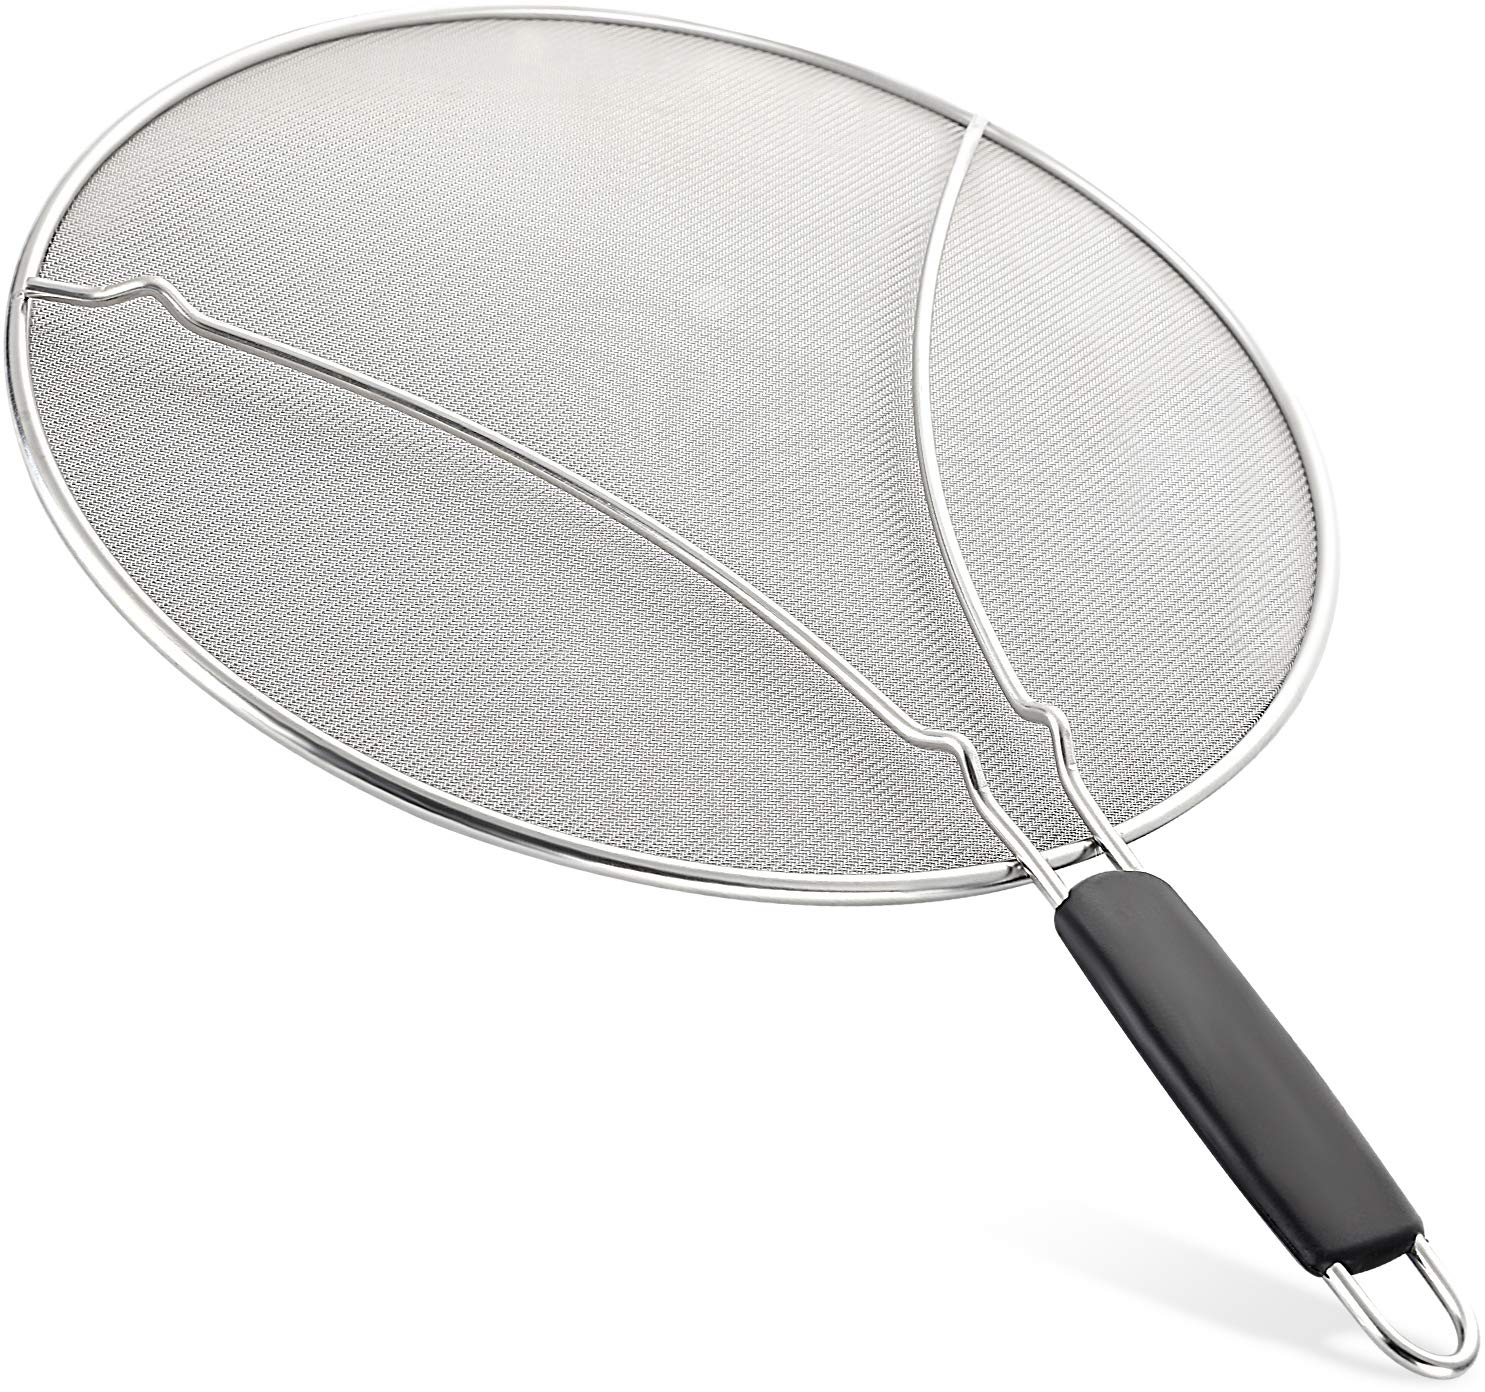 """Medium Splatter Screen for Frying Pan – Stops Almost 100% of Hot Oil Splash – 11.5"""" Stainless Steel Grease Guard Shield and Catcher – Keeps Stove and Pans Clean & Prevents Burns When Cooking by Zulay"""